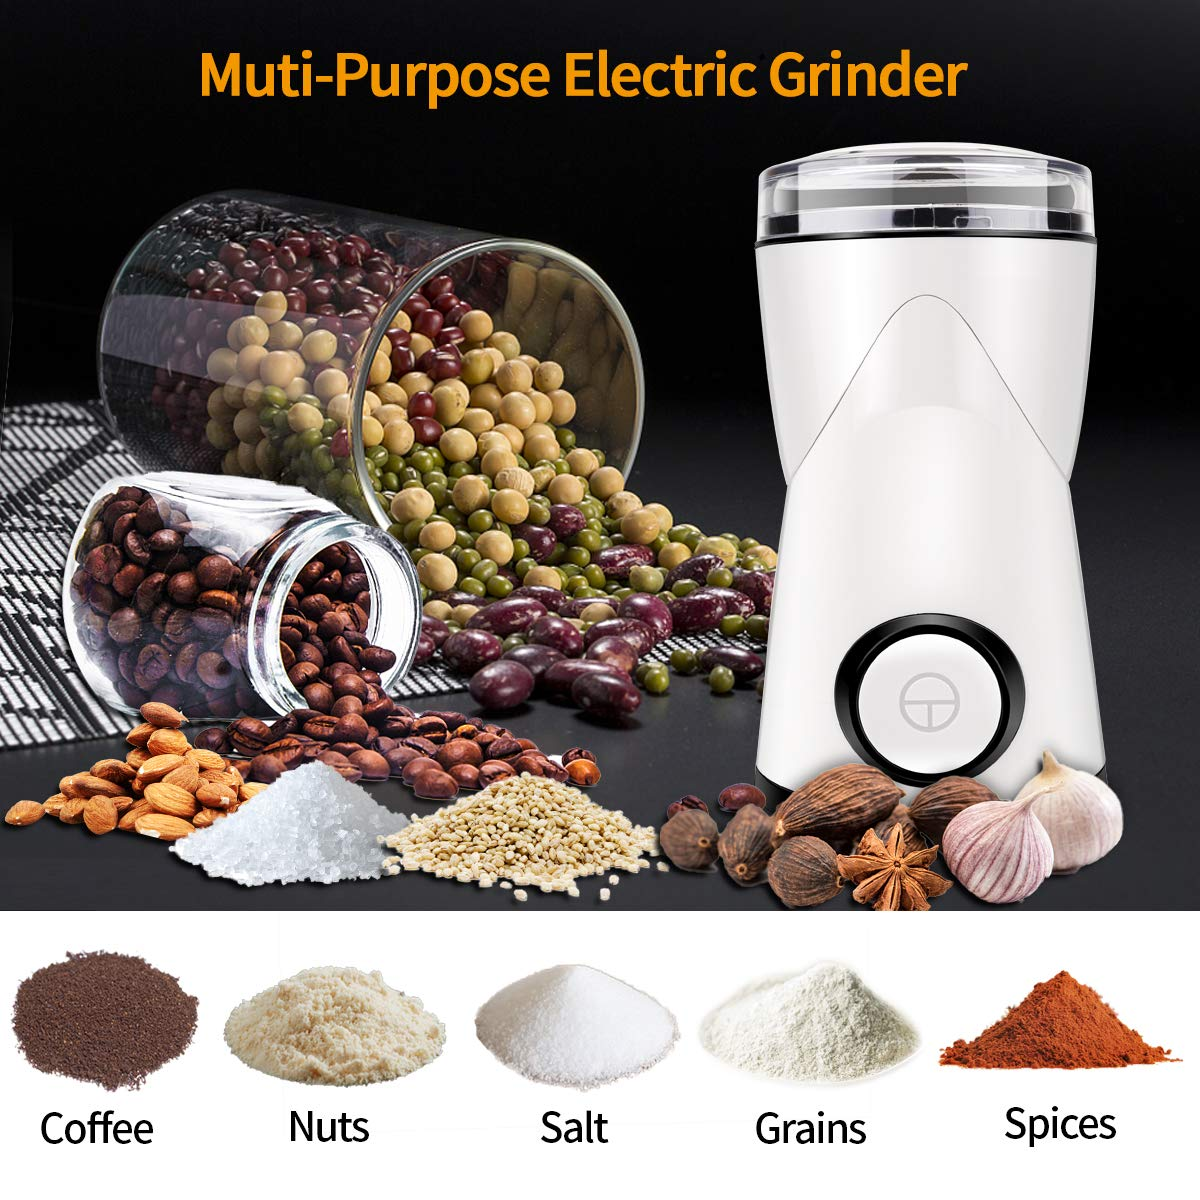 Precision Electric Coffee Grinder Mill with Large Grinding Capacity, HD Motor and Brush Coffee Machine Parts for Spices, Herbs, Nuts, Grains and More Water Filters